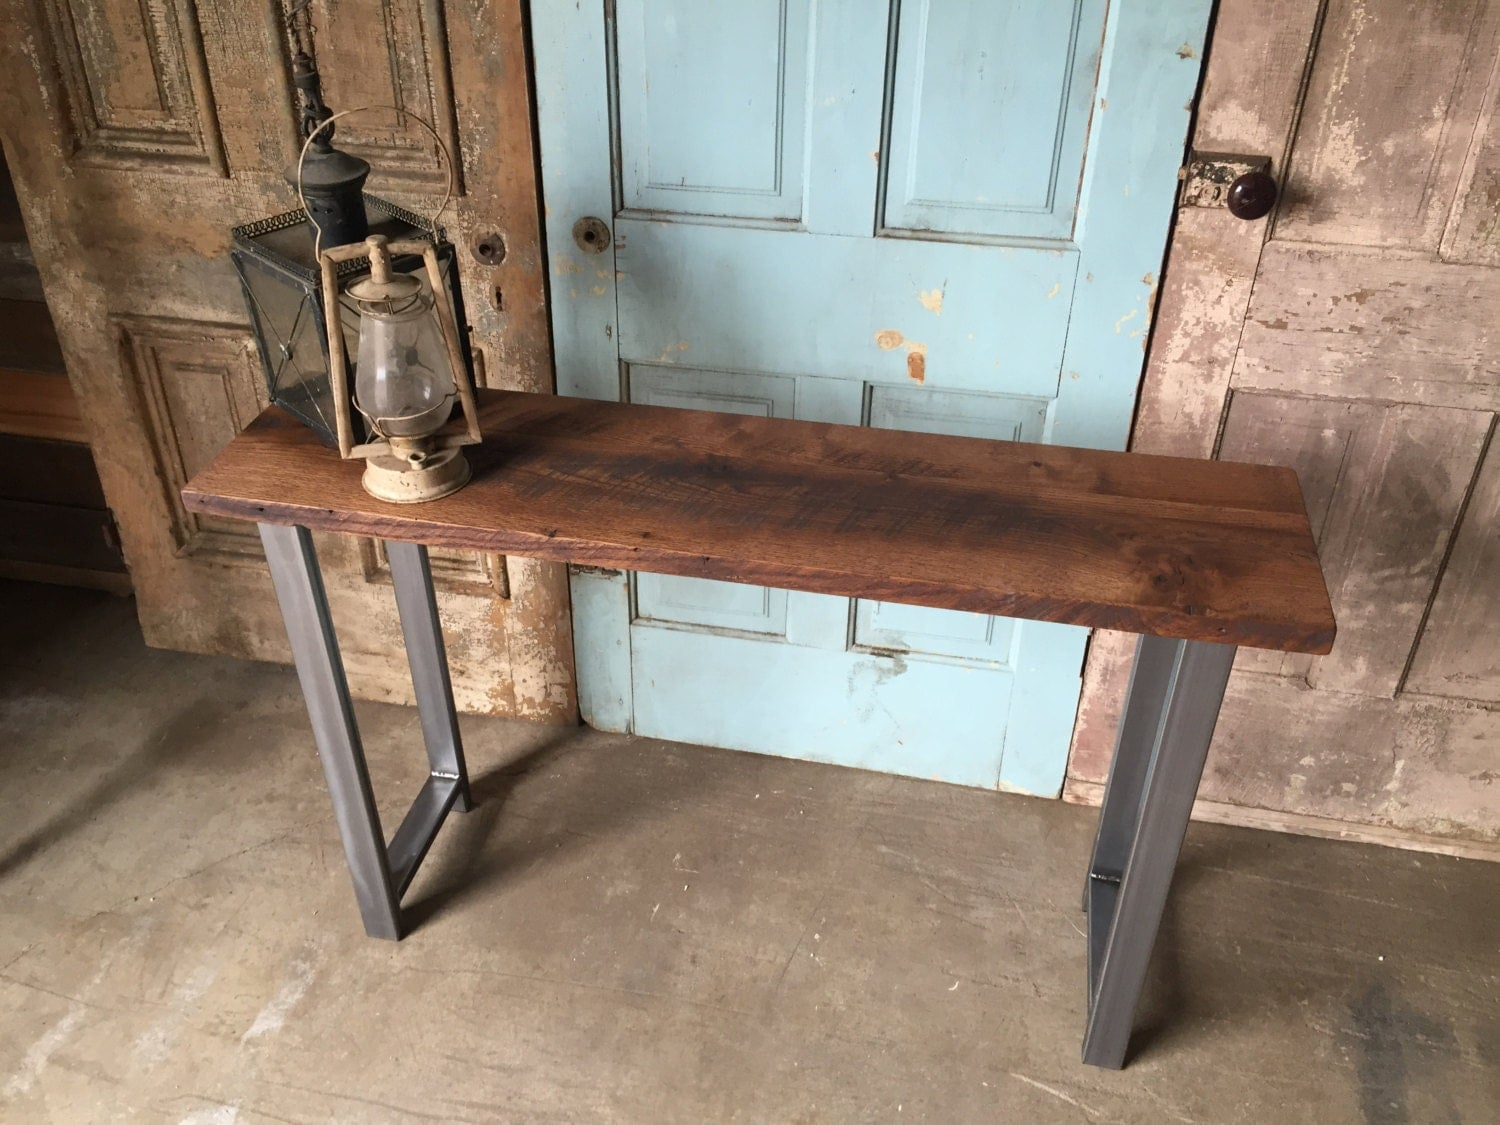 Reclaimed Wood Industrial Console Table   H Shaped Metal Legs  zoom. Reclaimed Wood Industrial Console Table   H Shaped Metal Legs